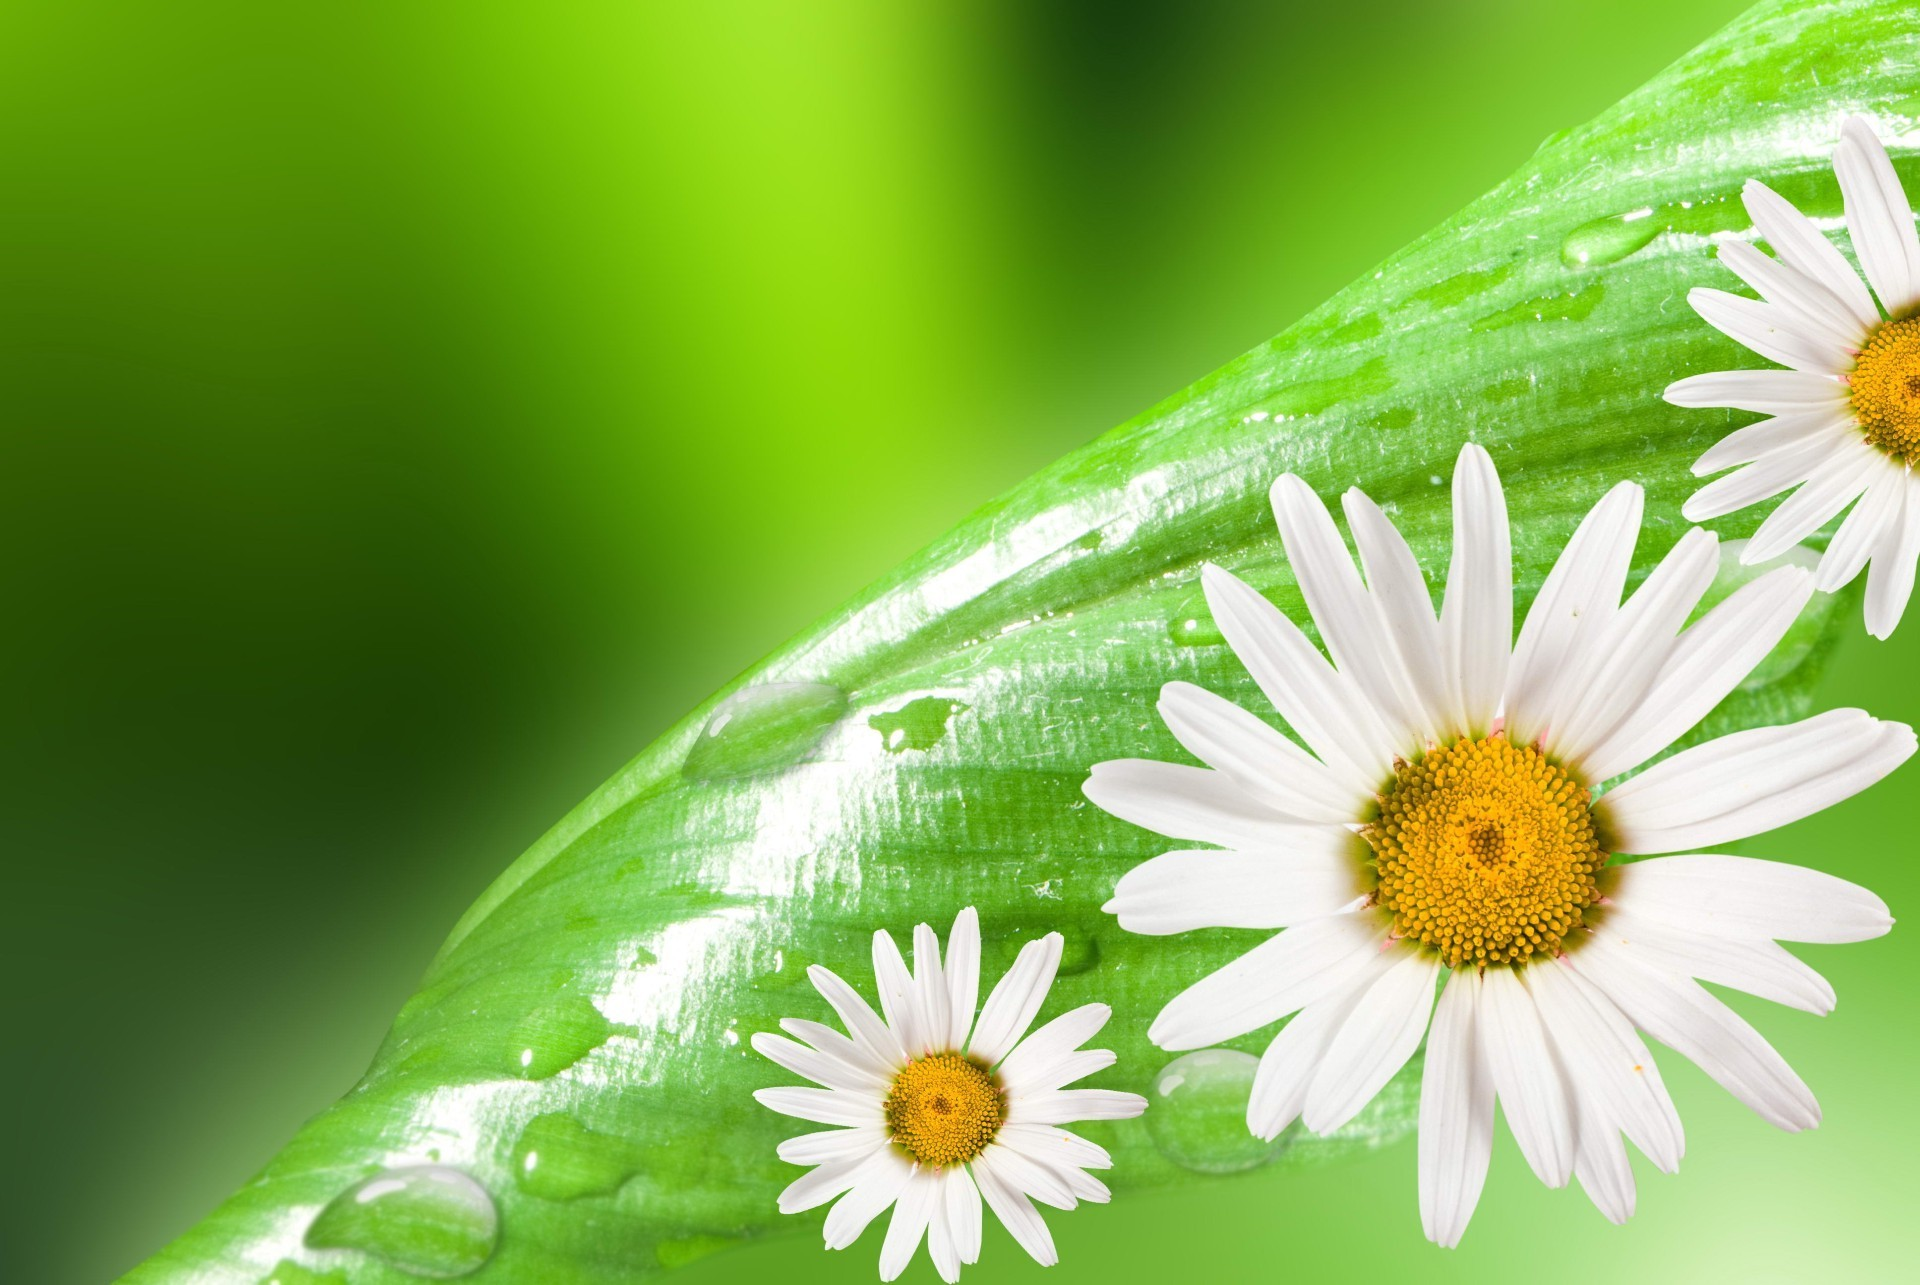 Daisies on a soft green background